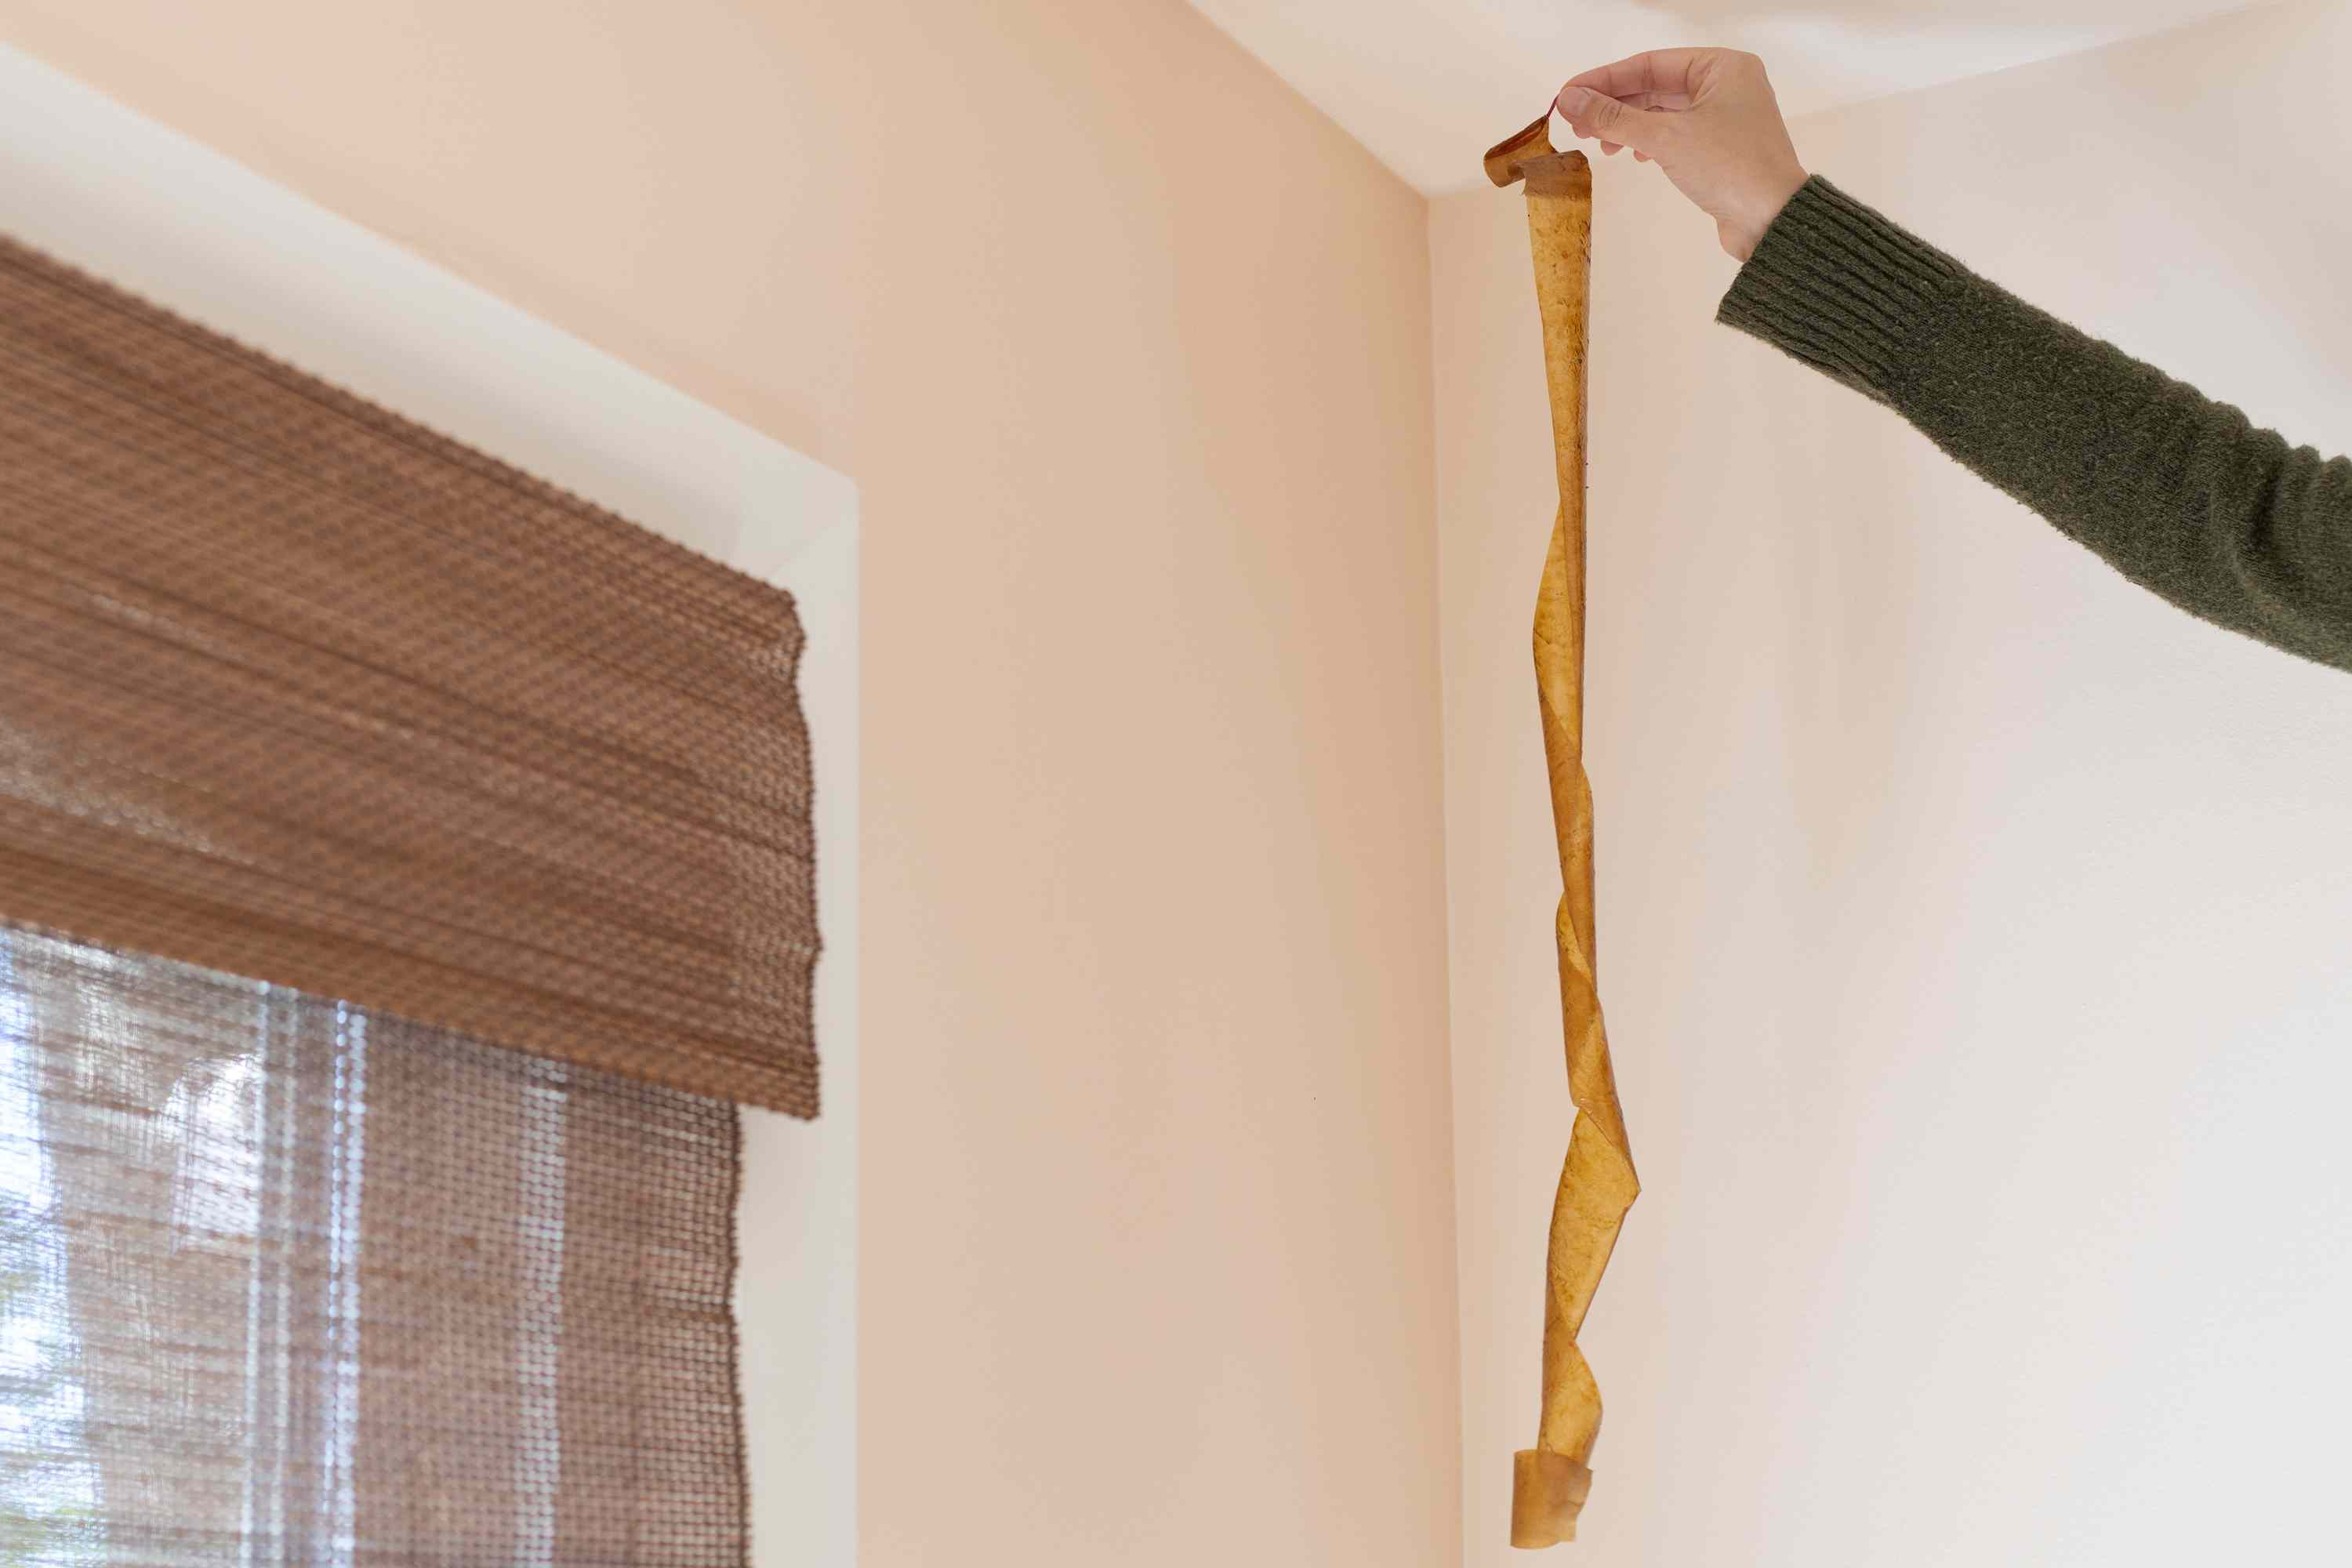 Flypaper being hung from ceiling to trap cluster flies near window